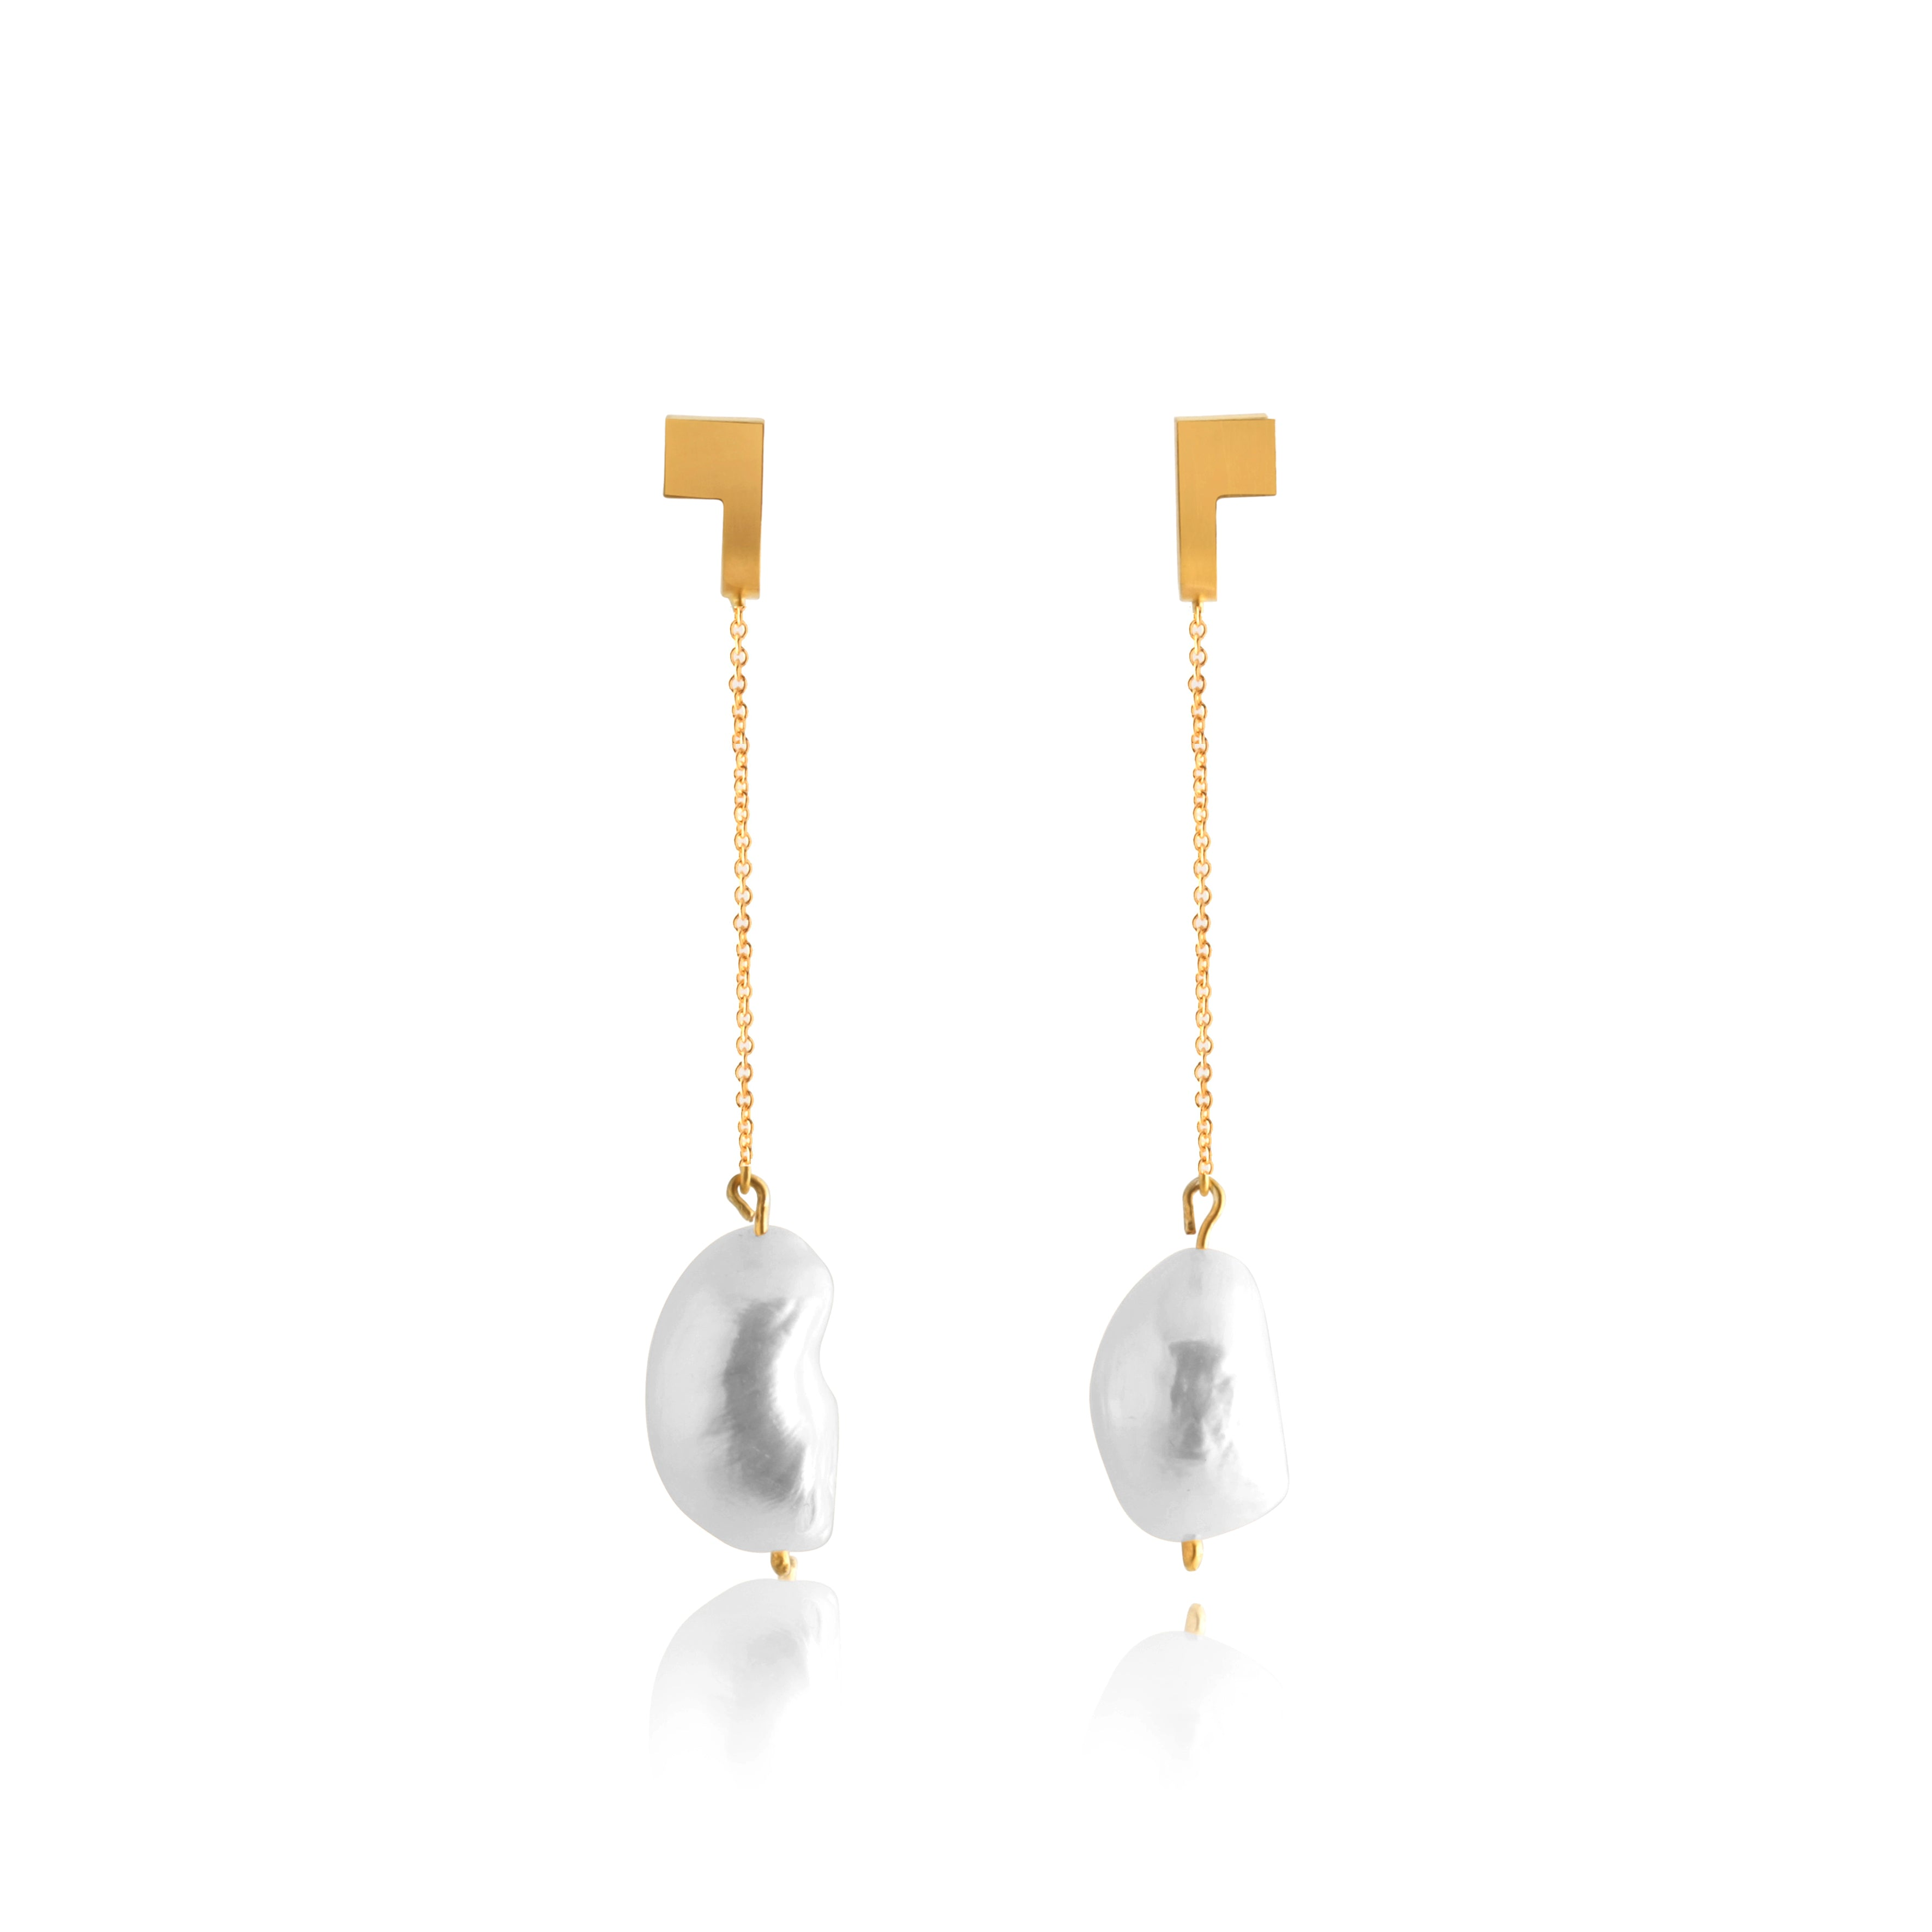 Unfinishing Line Gold And Pearl Curve Line Extension Earrings